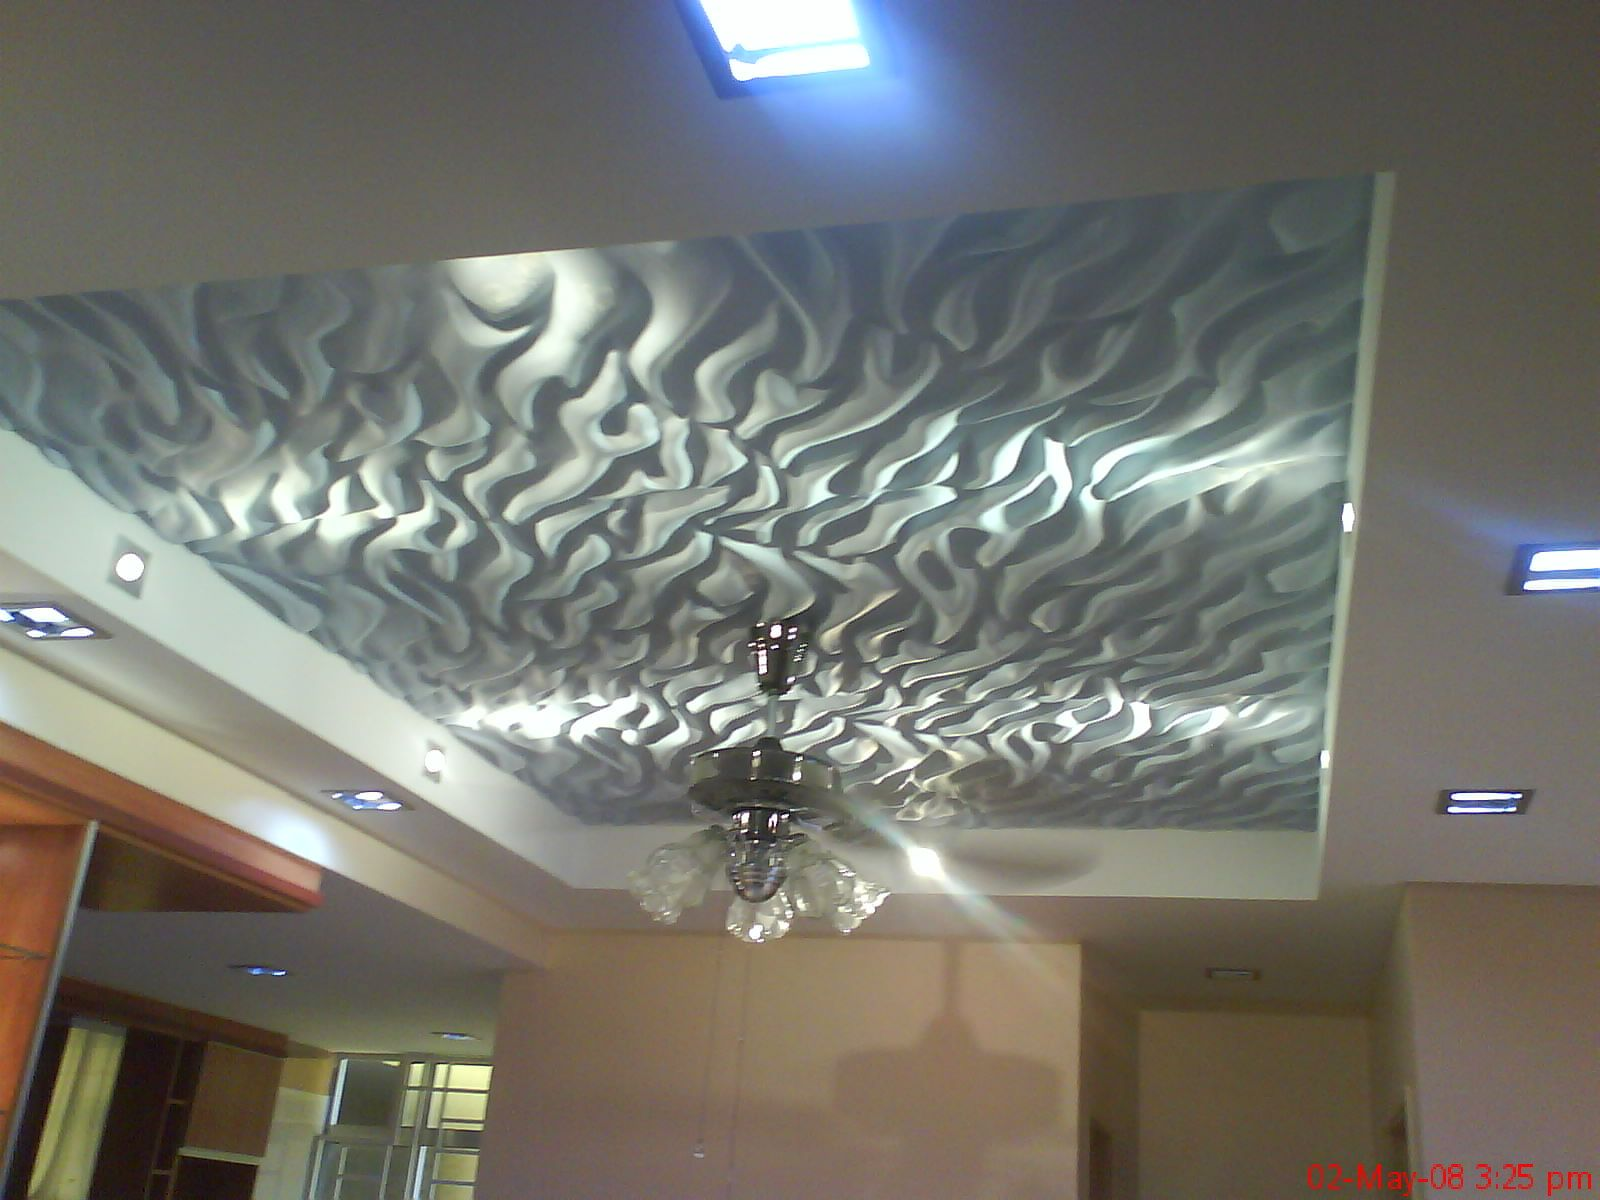 Ceiling Design Ideas ceiling design ideas 20 Inspiring Ceiling Design Ideas For Your Next Home Makeover